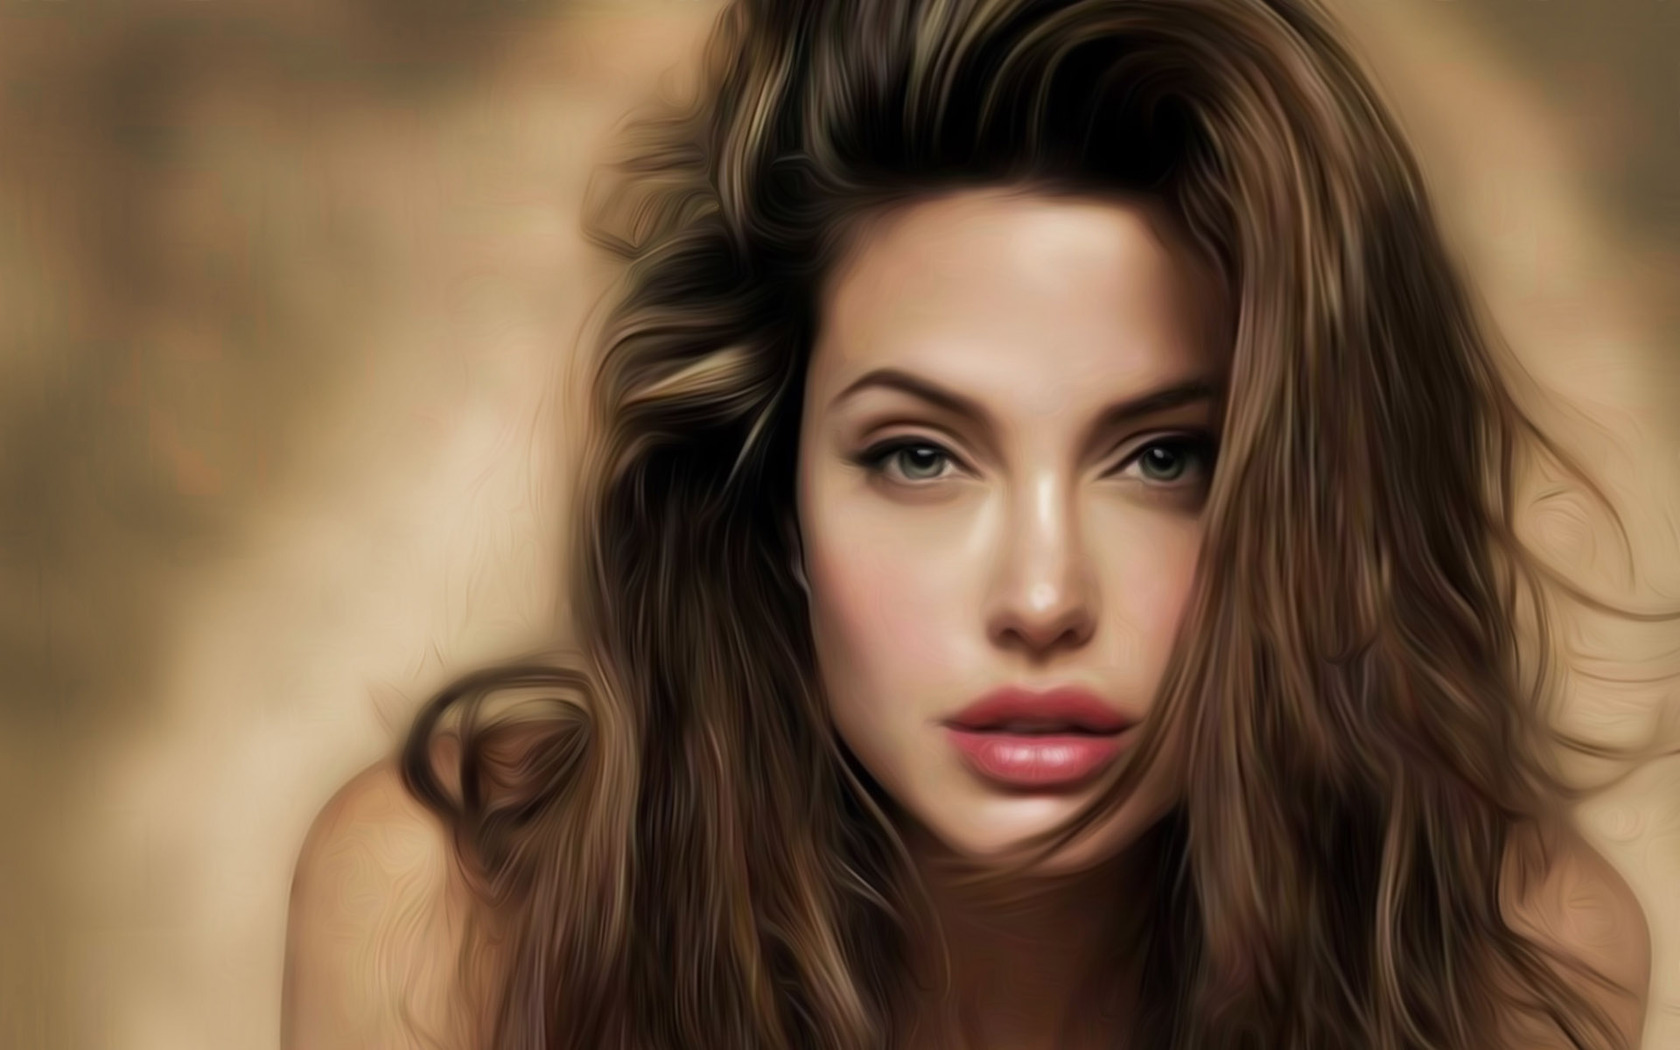 angelina-jolie-drawing.jpg